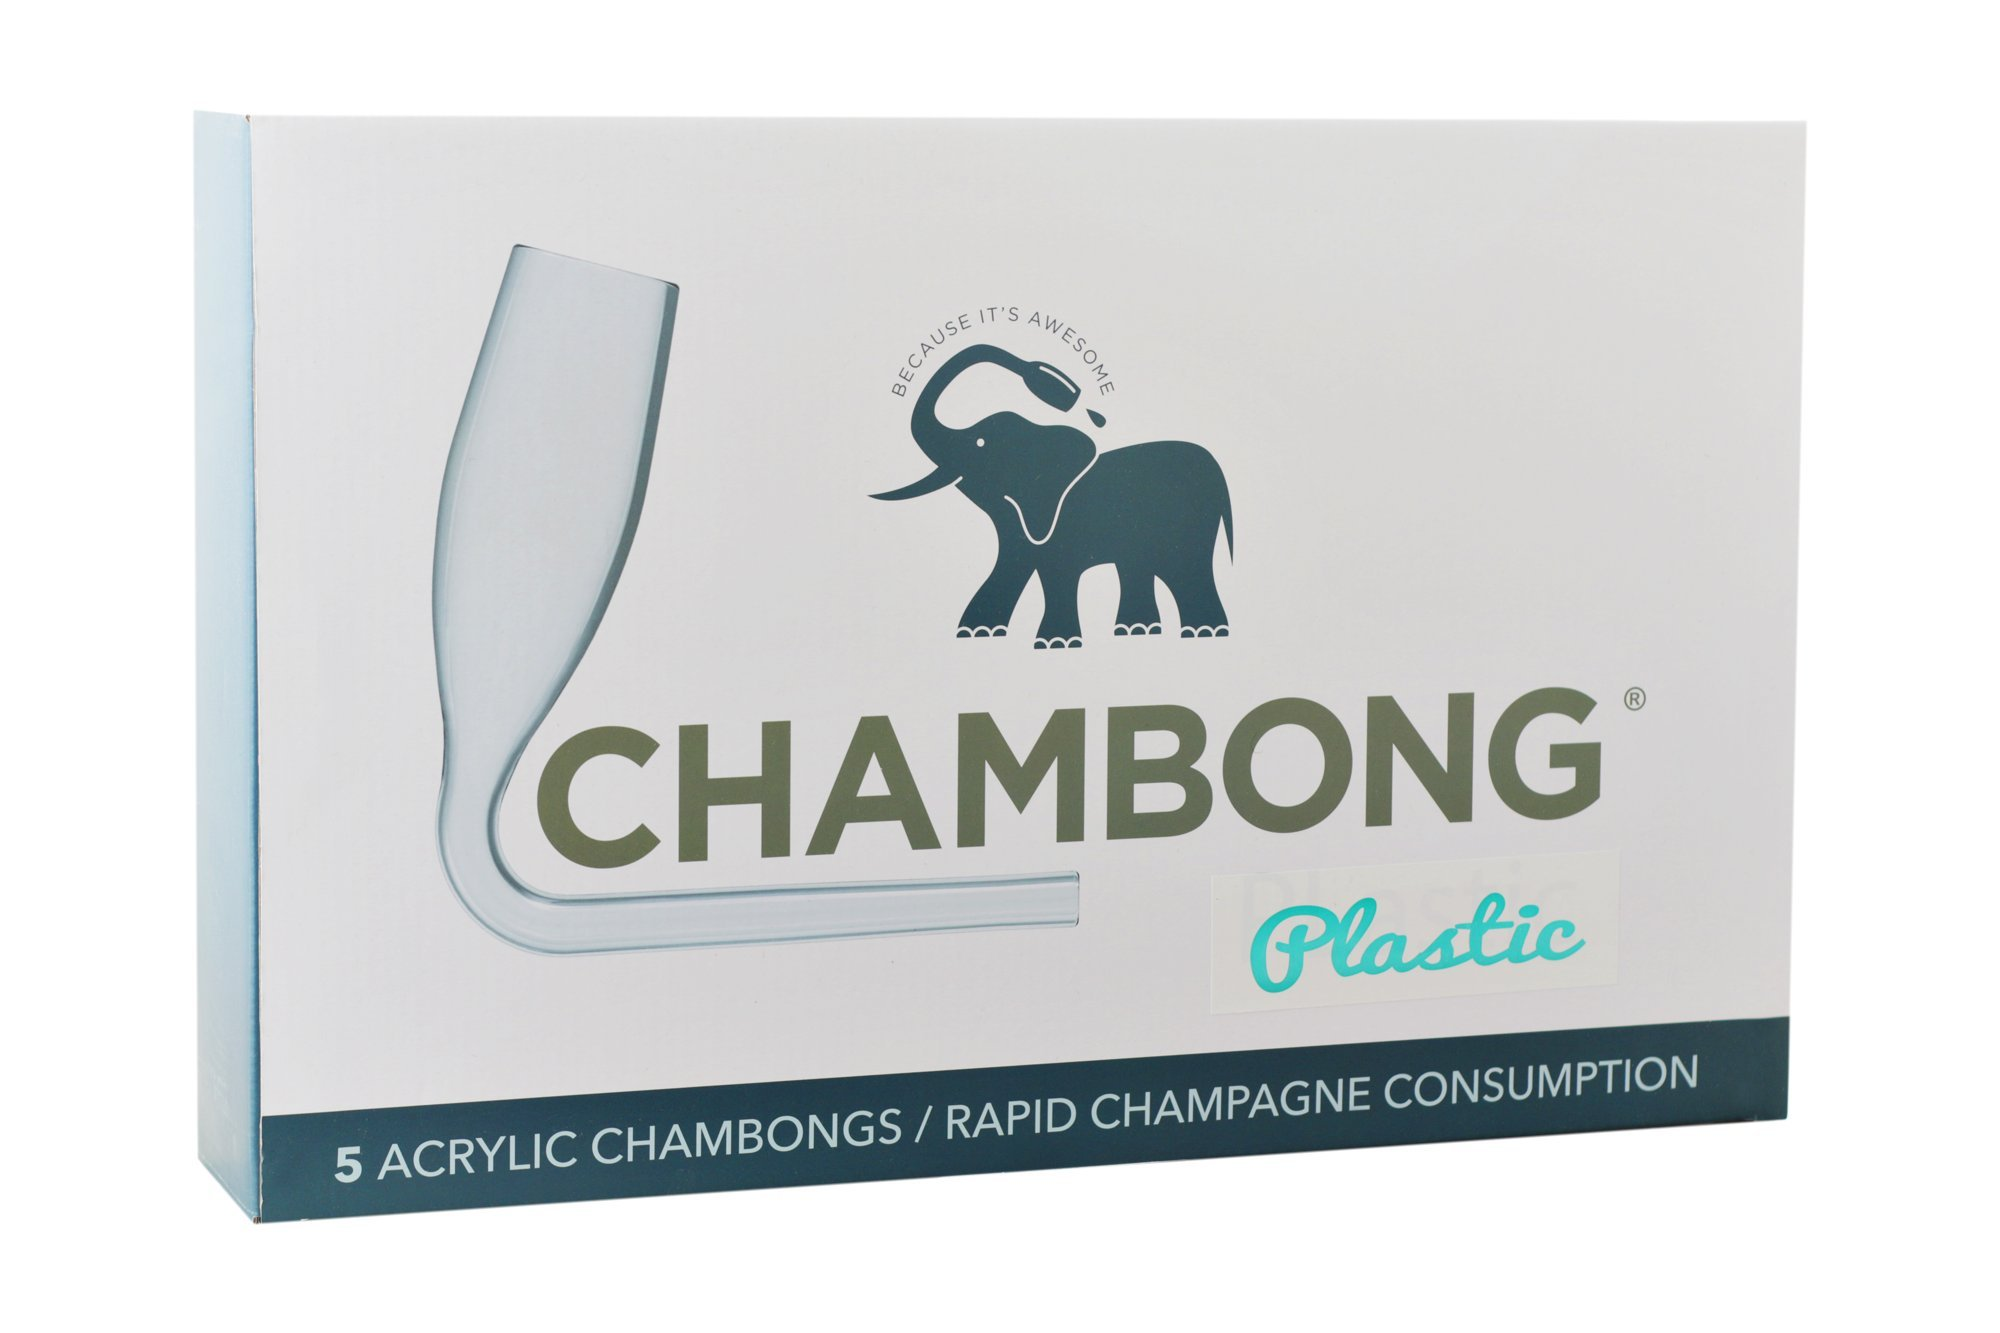 Chambong (Plastic) - 5 Acrylic Chambongs for rapid Champagne consumption